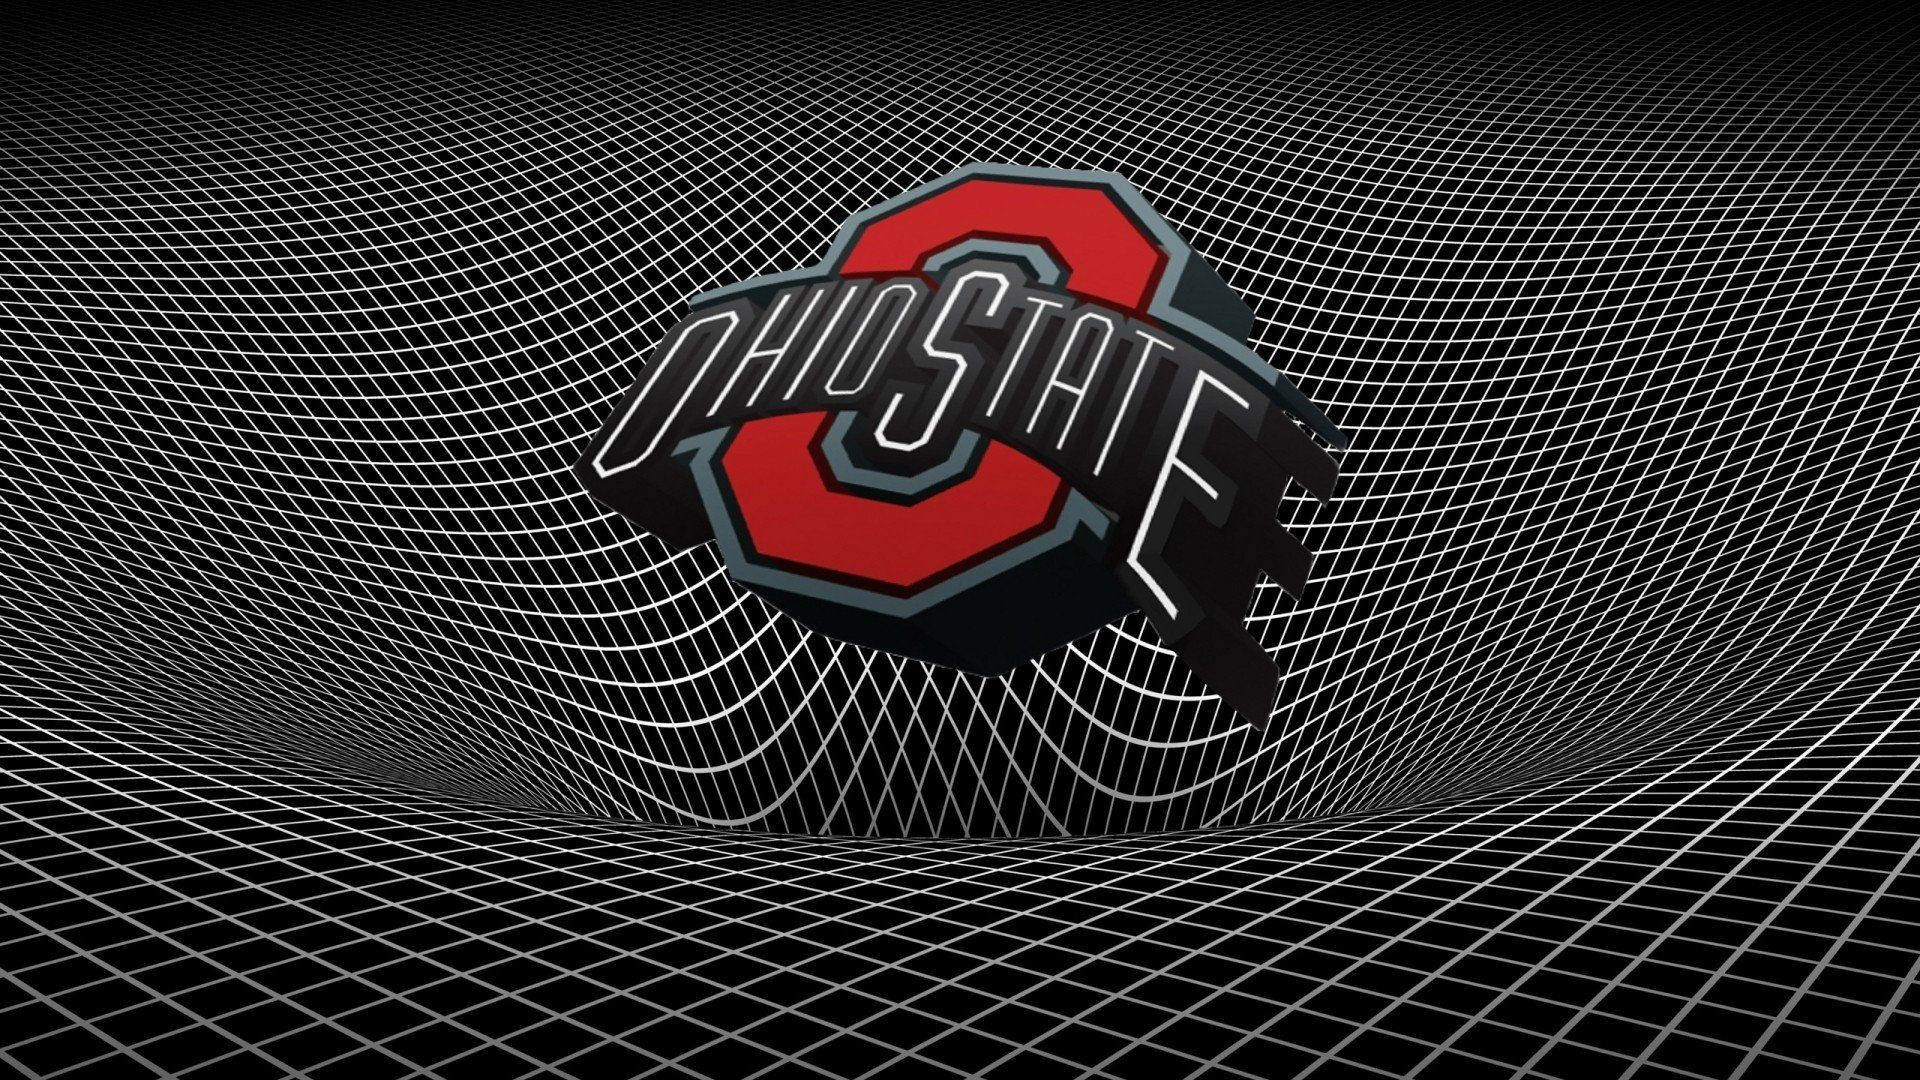 1920x1080 Sports American Football NFL logos Ohio State football teams .